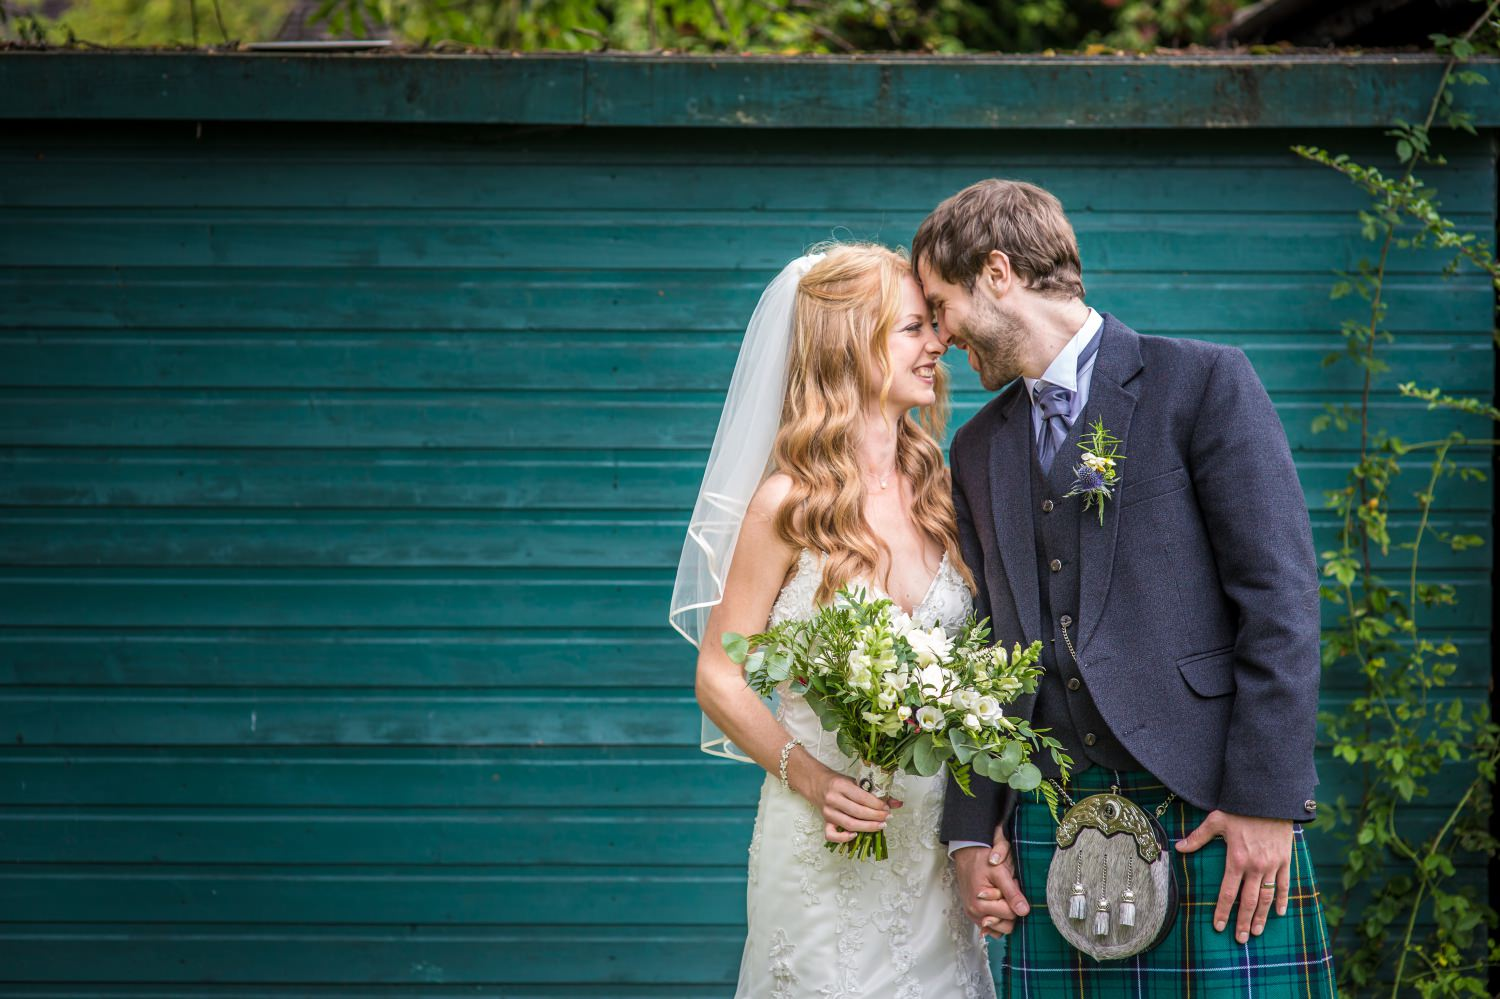 Wedding portrait at Cheshire venue Hundred House Hotel